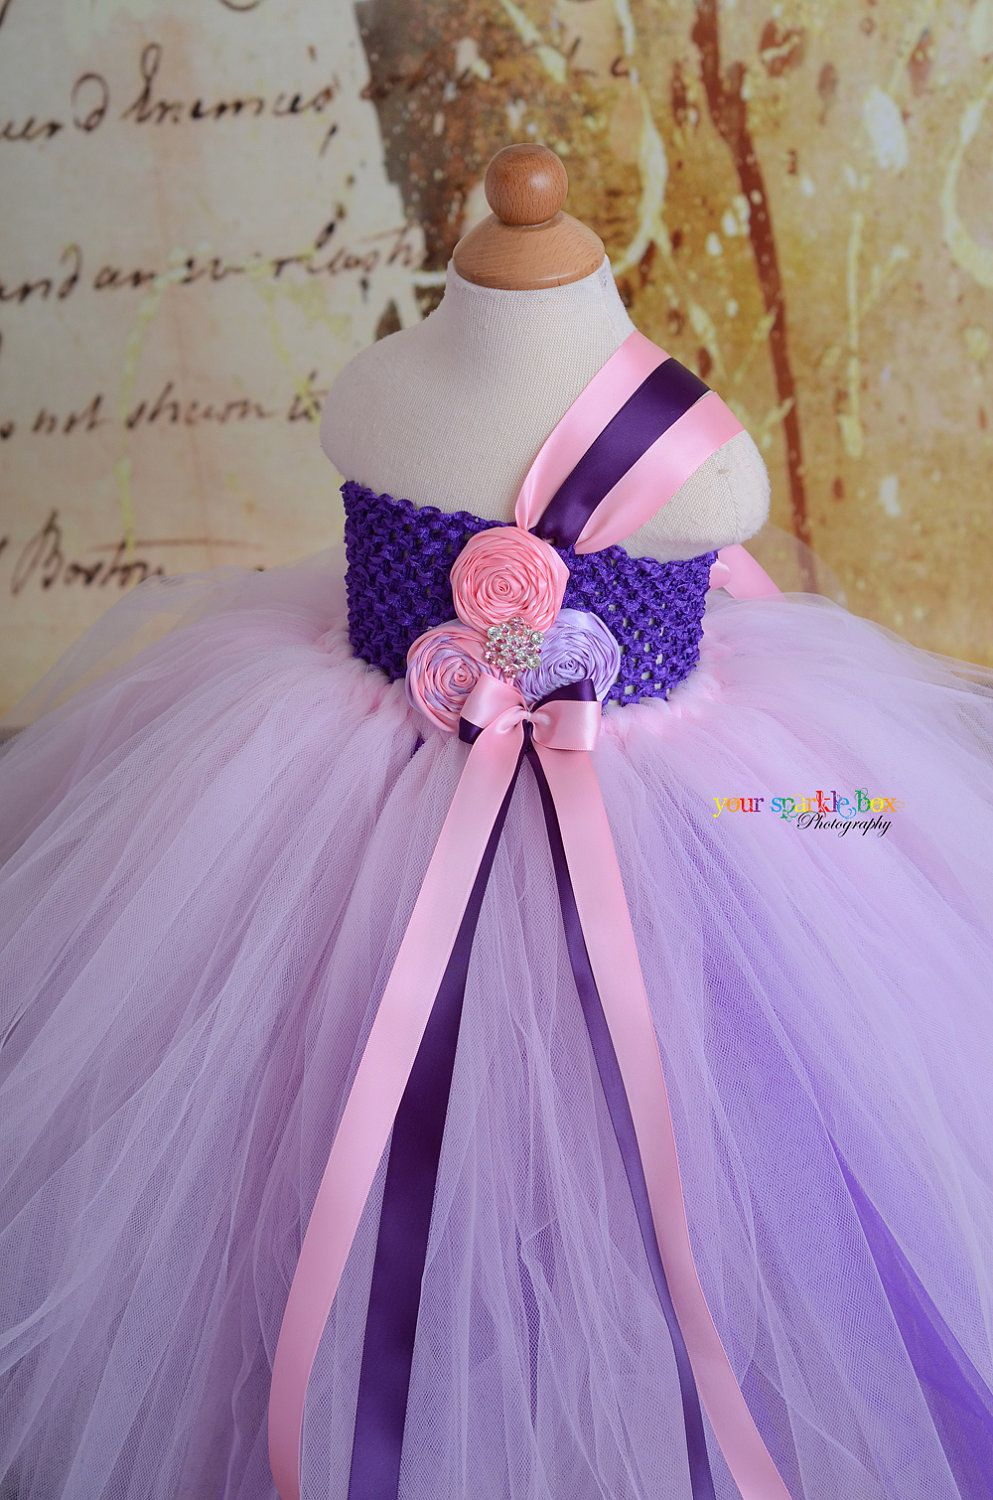 Purple Pink Lavender Tutu Dress Could Easily Substitute The Dark Purple On The Bodice On Tulle Underneath With The Purple Tutu Dress Purple Tutu Tutu Dress [ 1500 x 993 Pixel ]